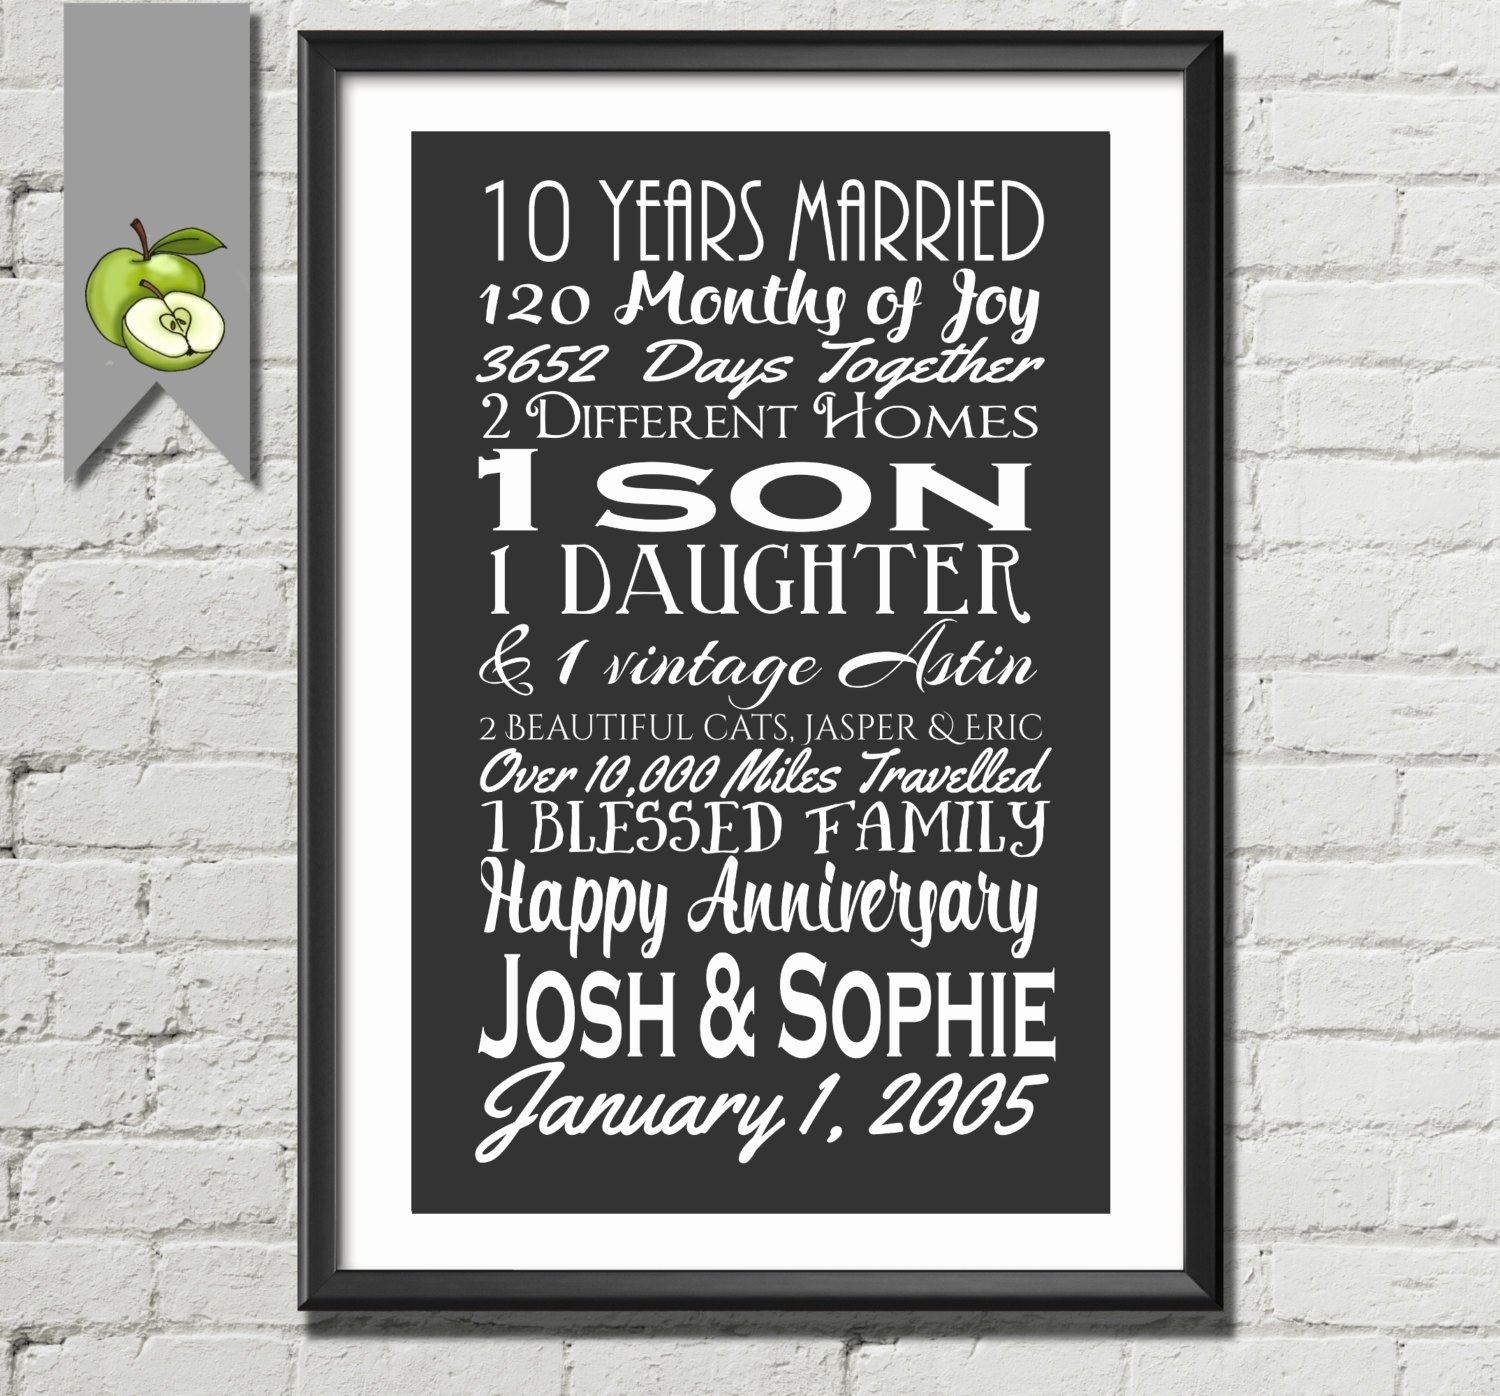 10 Awesome Gift Ideas For 10 Year Anniversary